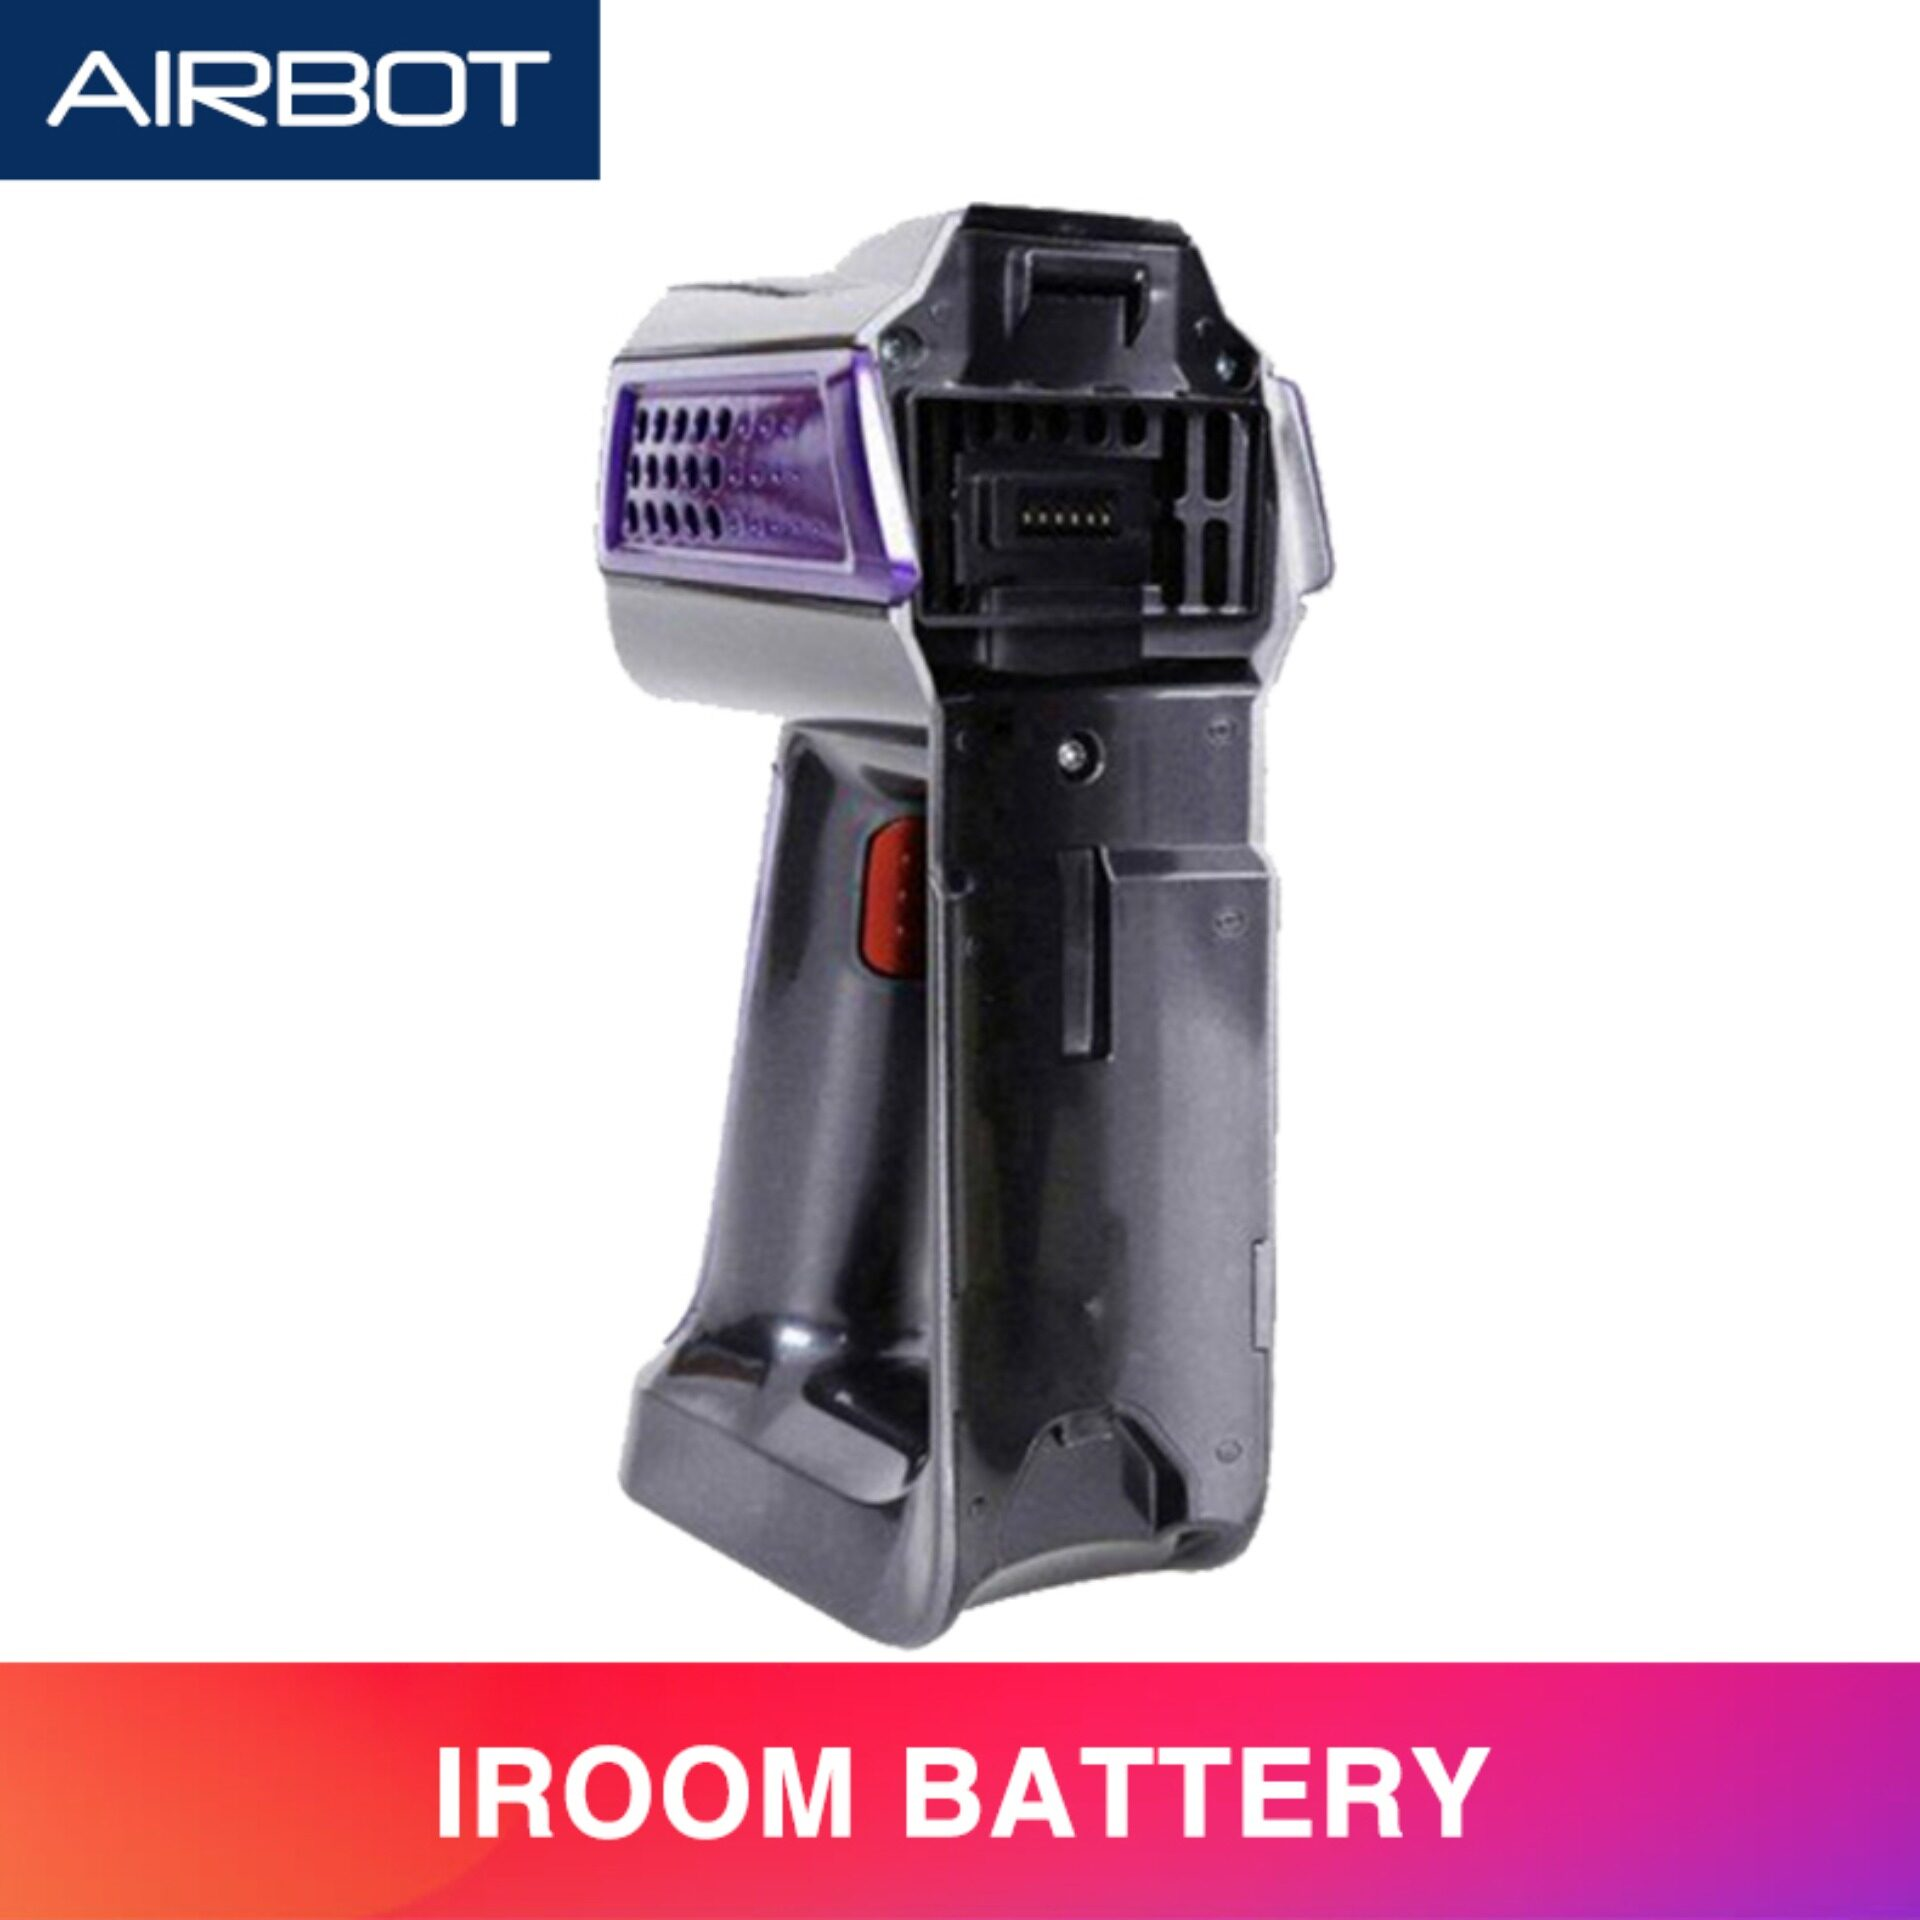 Airbot iRoom Cordless Handheld Vacuum Cleaner Replacement Spare Part Battery